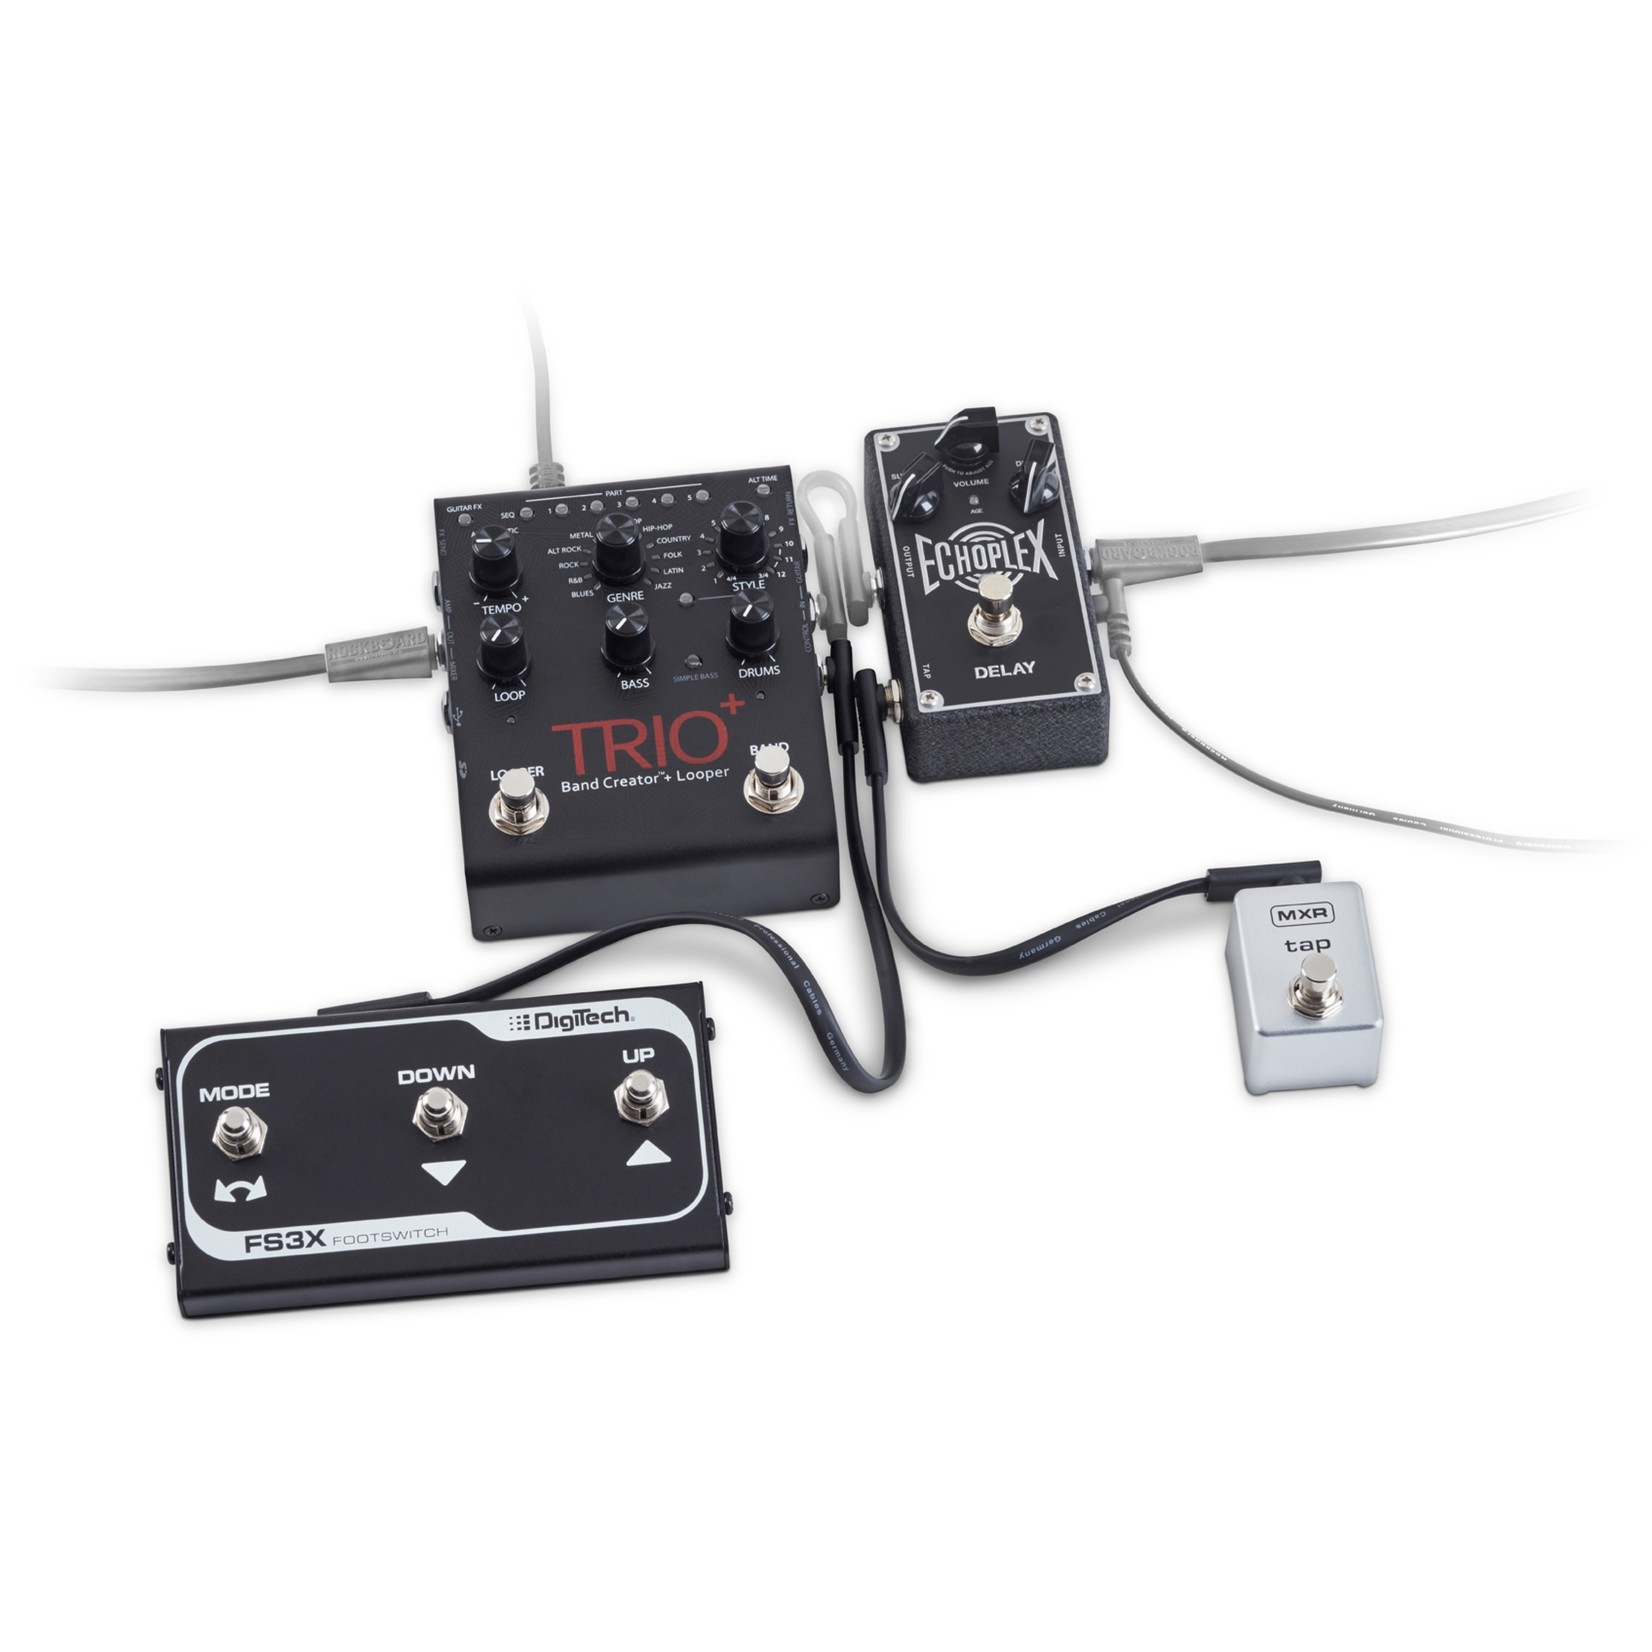 """Rockboard Rockboard Flat Patch TRS Cable, 60 cm / 23.62"""", Black, low profile, for switch & expression pedals"""